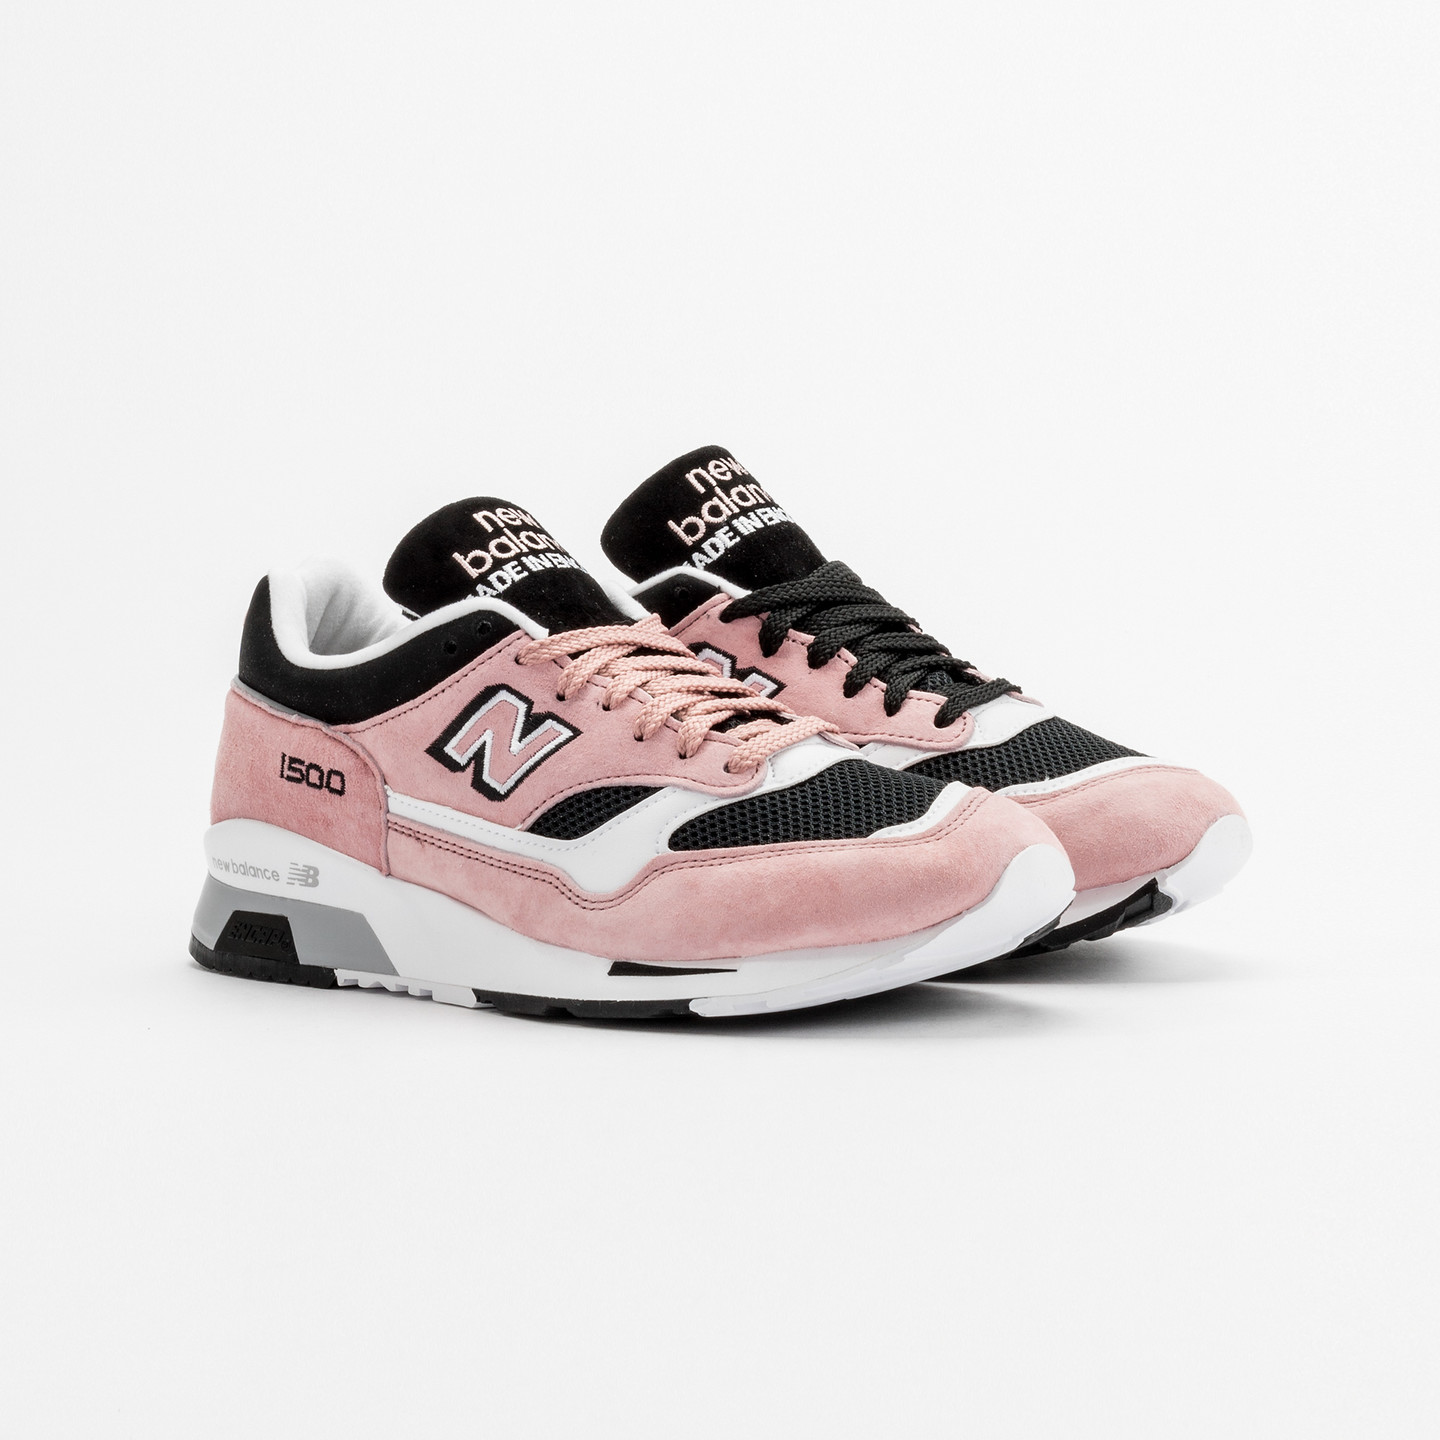 New Balance M1500 MPK - Made in England Pink / Black / White M1500MPK